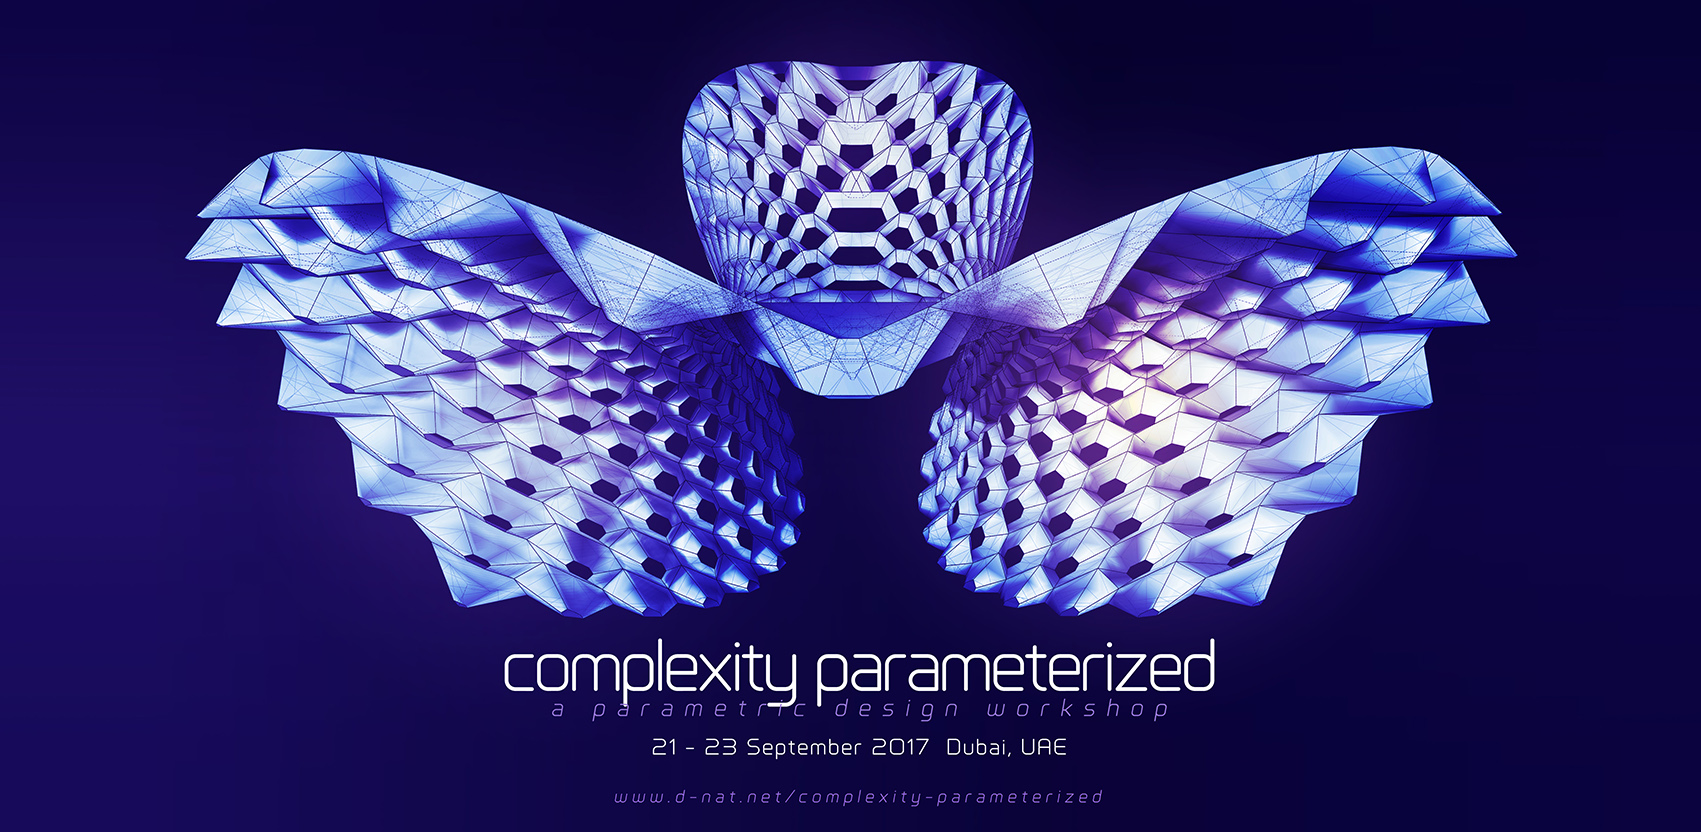 complexity-parameterized-dubai.jpg